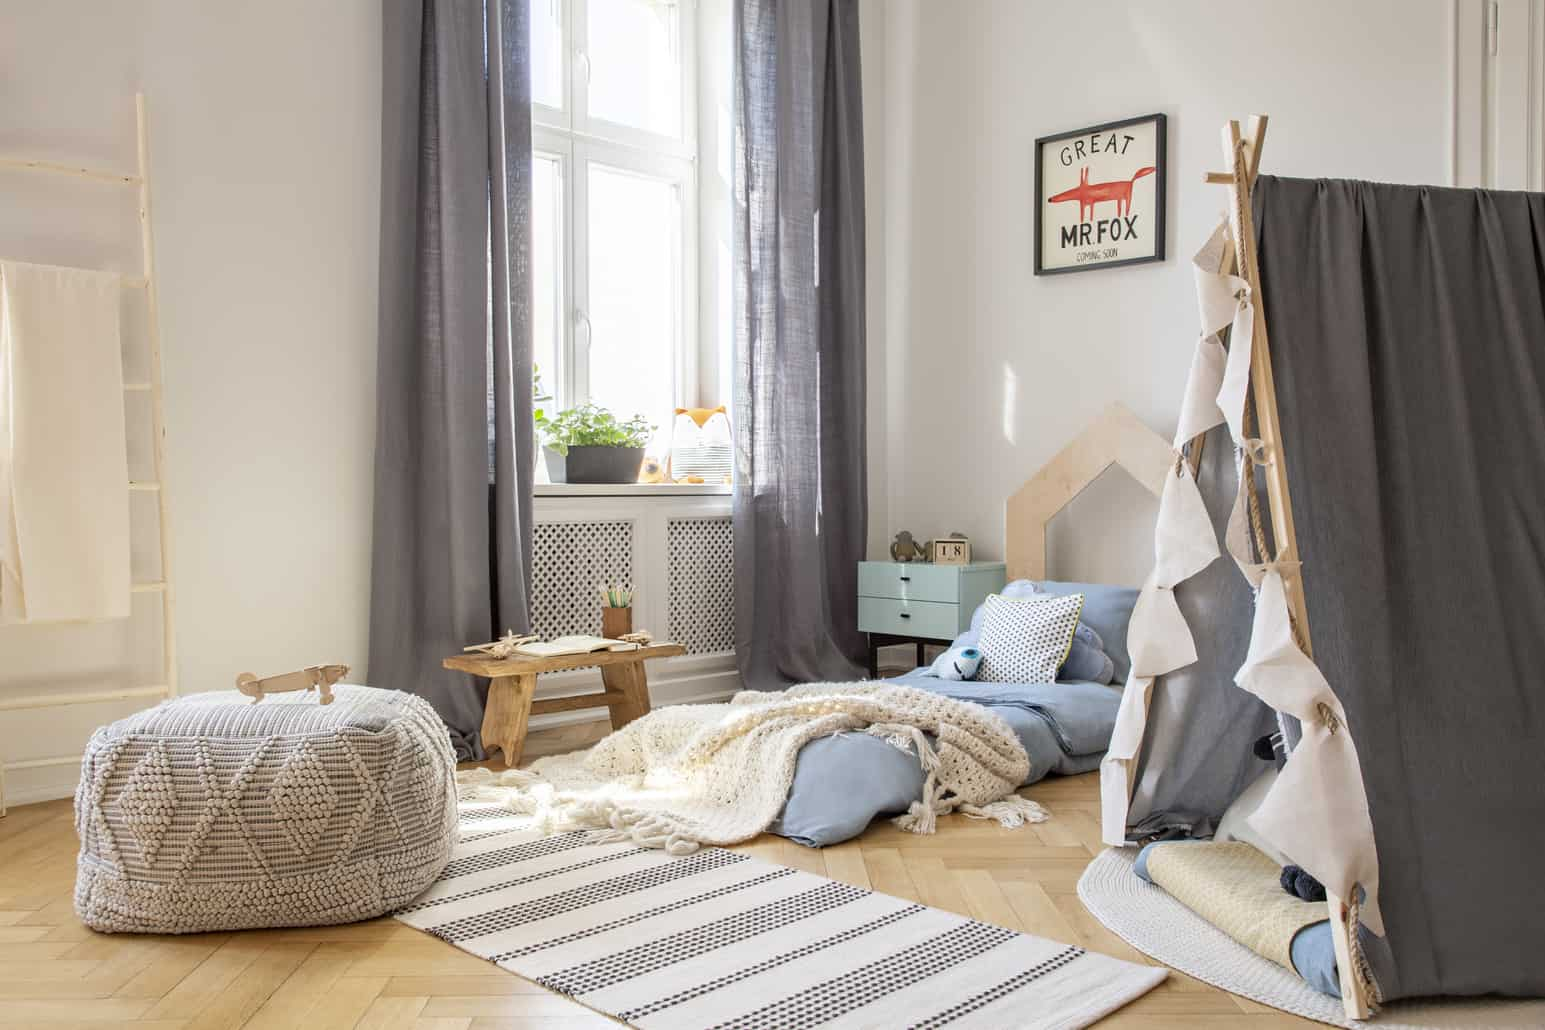 pouf and tent in bright kid's bedroom interior with drapes at window and blanket on blue bed. real photo